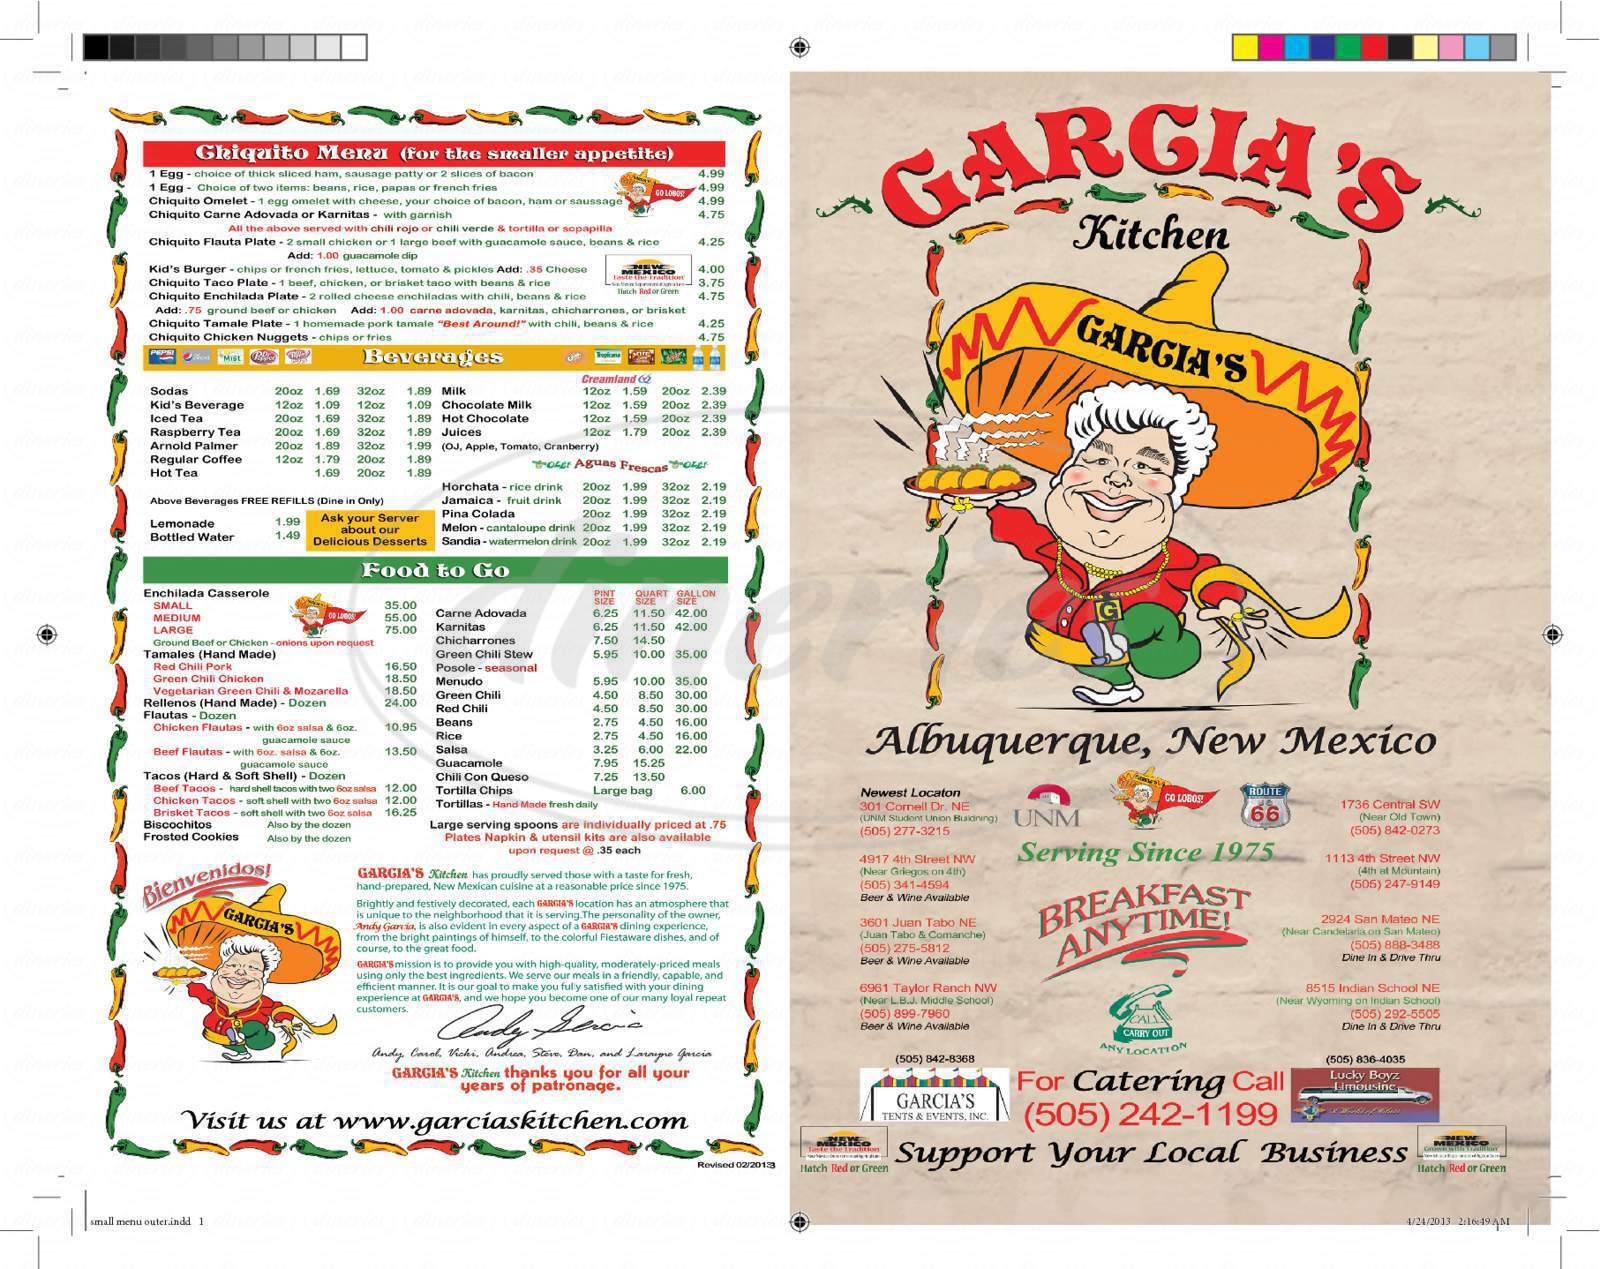 menu for Garcia's Kitchen